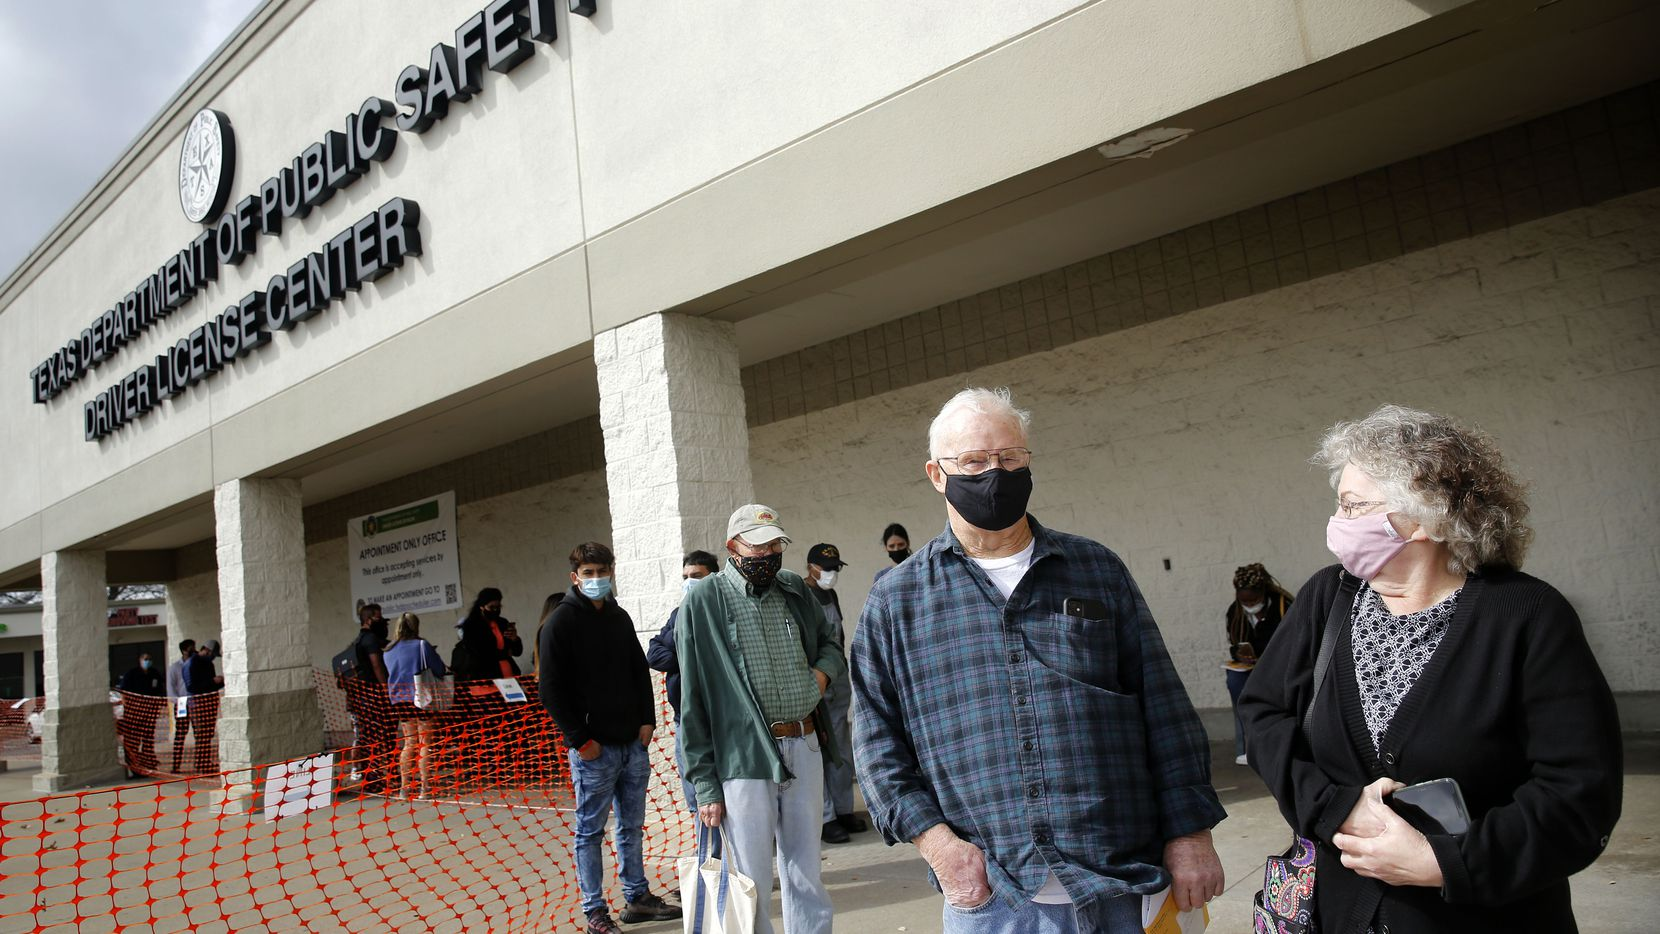 Wearing masks outside, Robert and Connie Clark of Garland wait in line to have their licenses renewed at the Texas Department of Public Safety Drivers License Center in Garland, Texas, Wednesday, March 10, 2021. Today is the first day of Governor Greg  Abbott's lifting of the mask mandate and other restrictions. (Tom Fox/The Dallas Morning News)